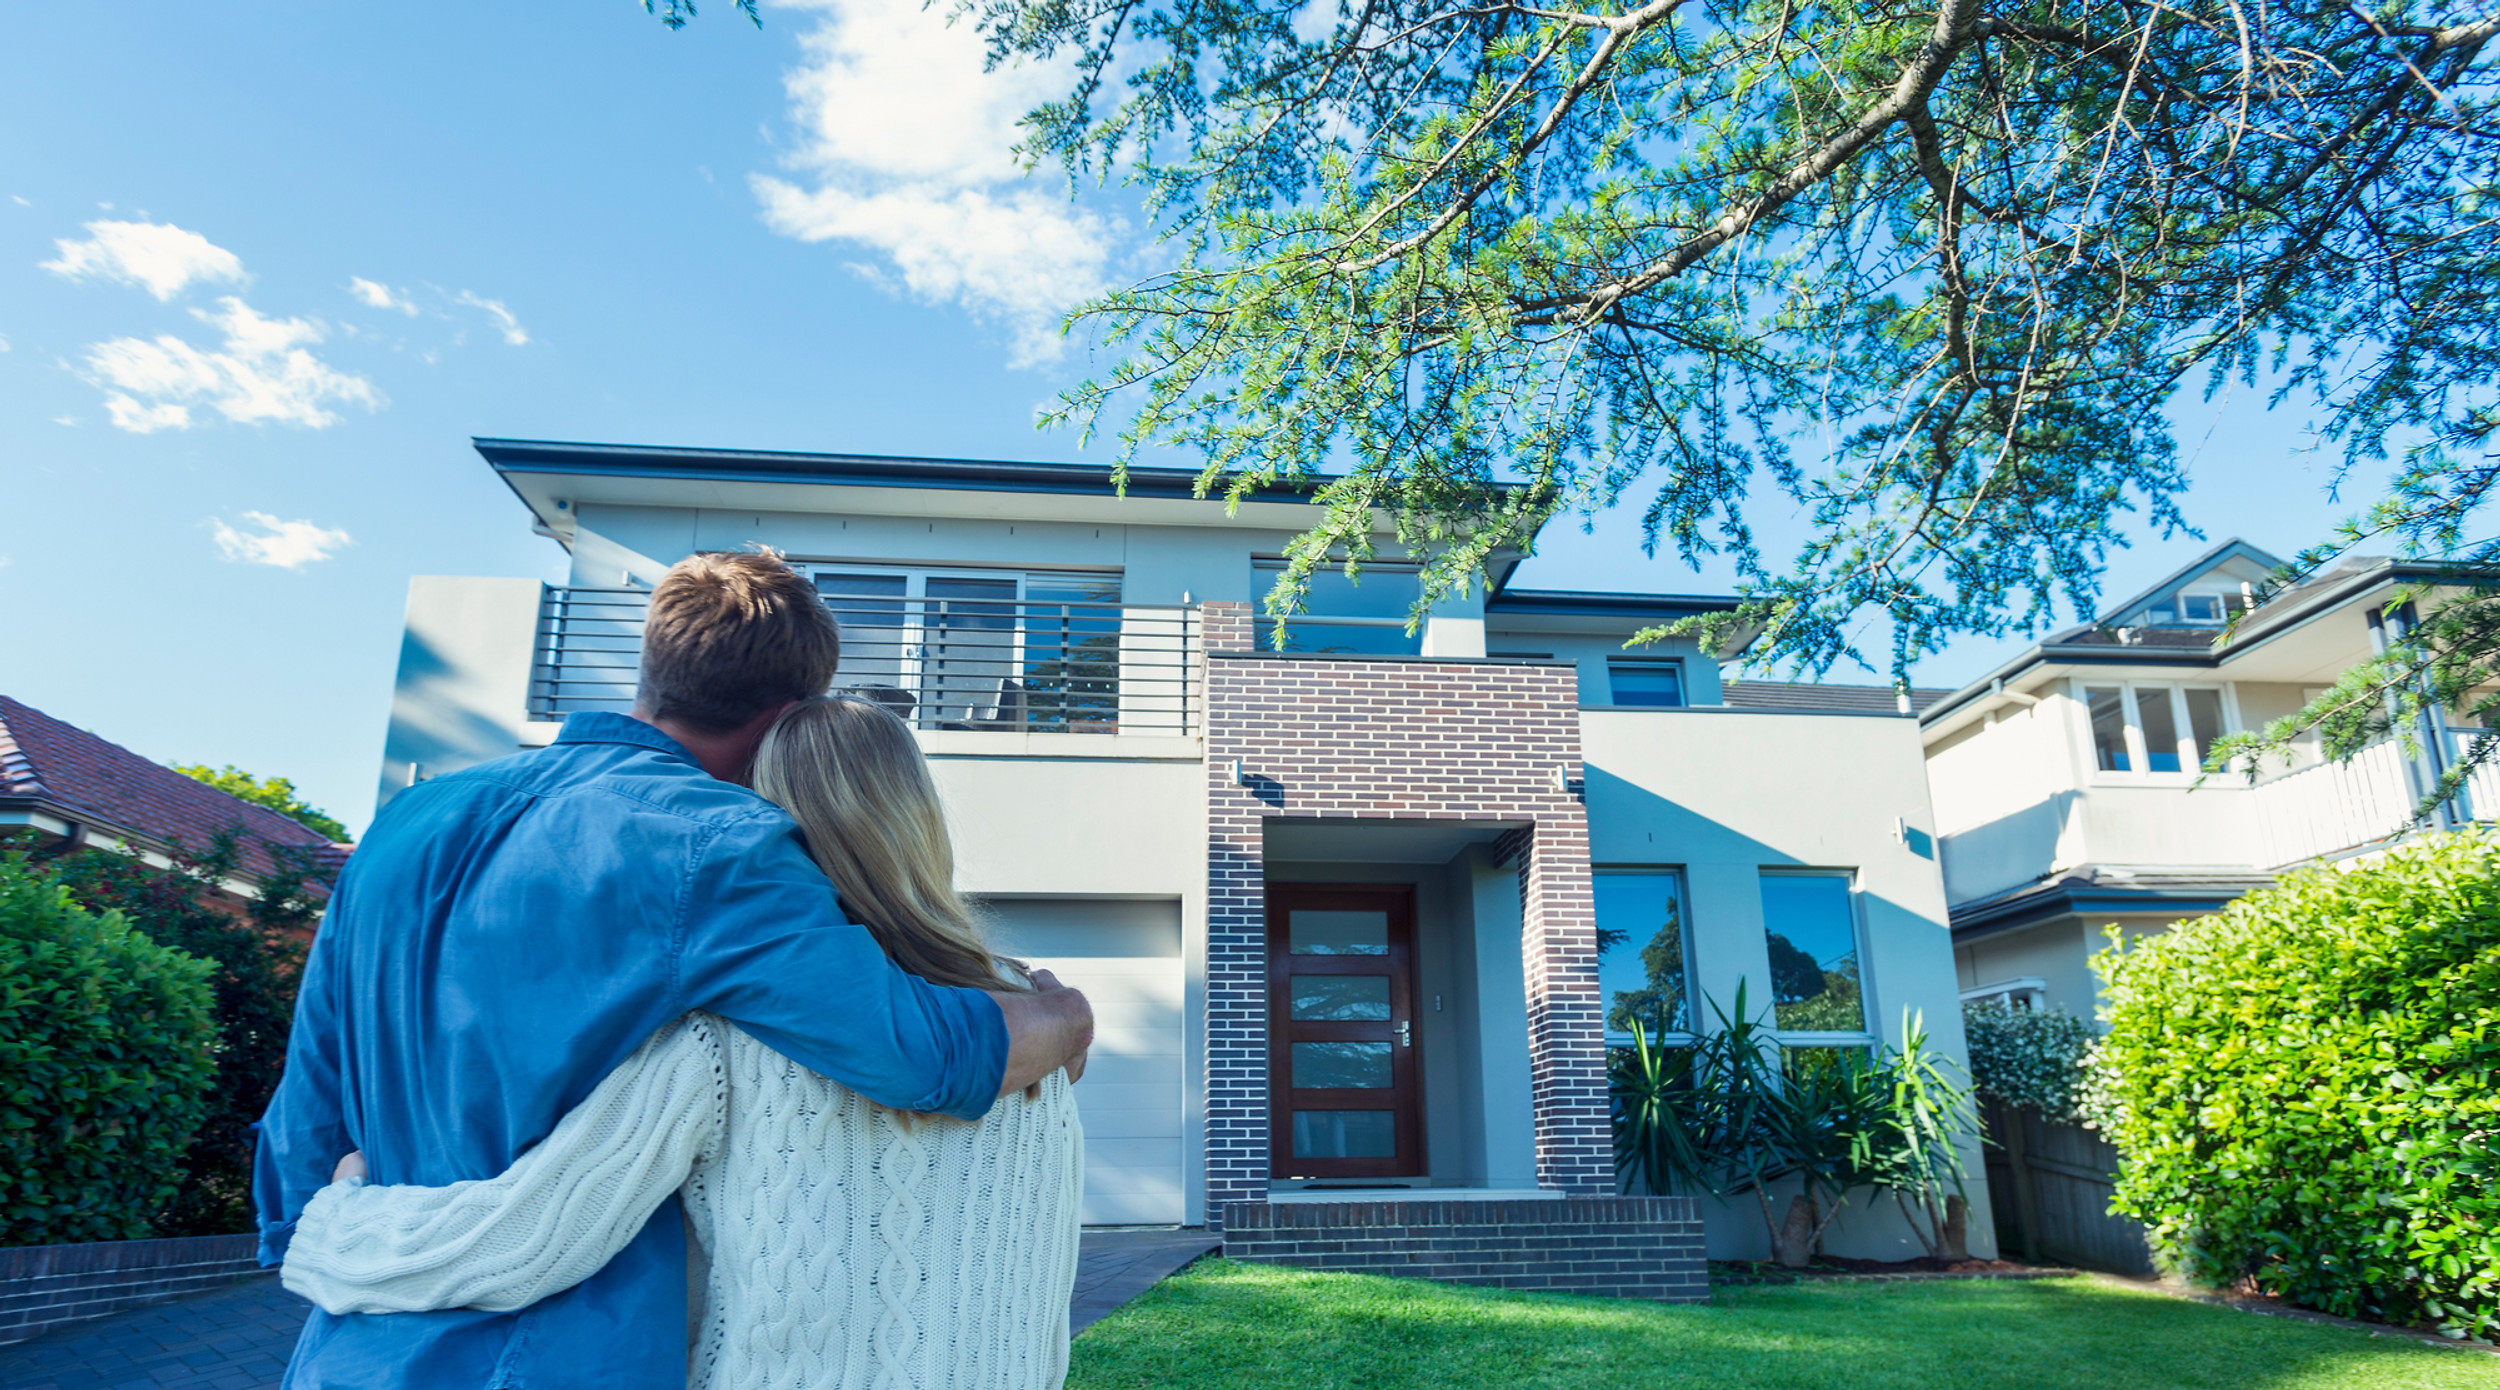 Home Inspections in Franklin and Brentwood